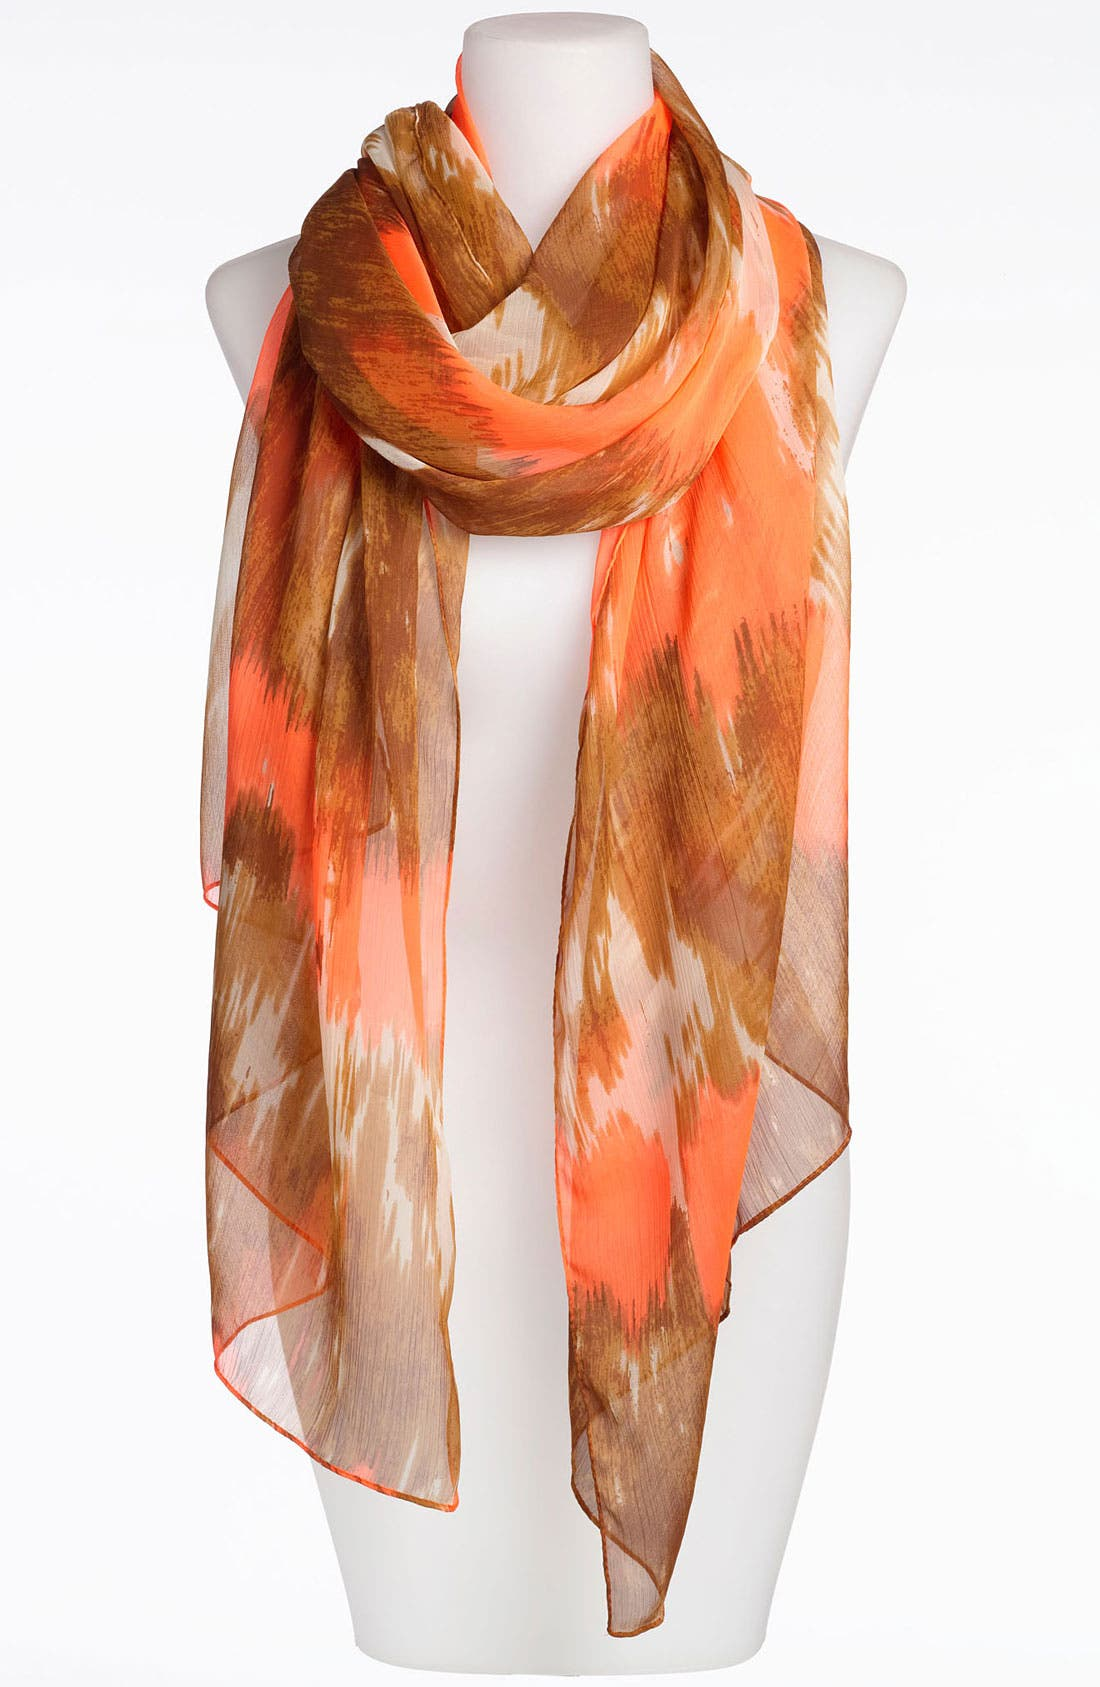 Alternate Image 1 Selected - Made of Me Accessories Tie Dye Stripe Scarf